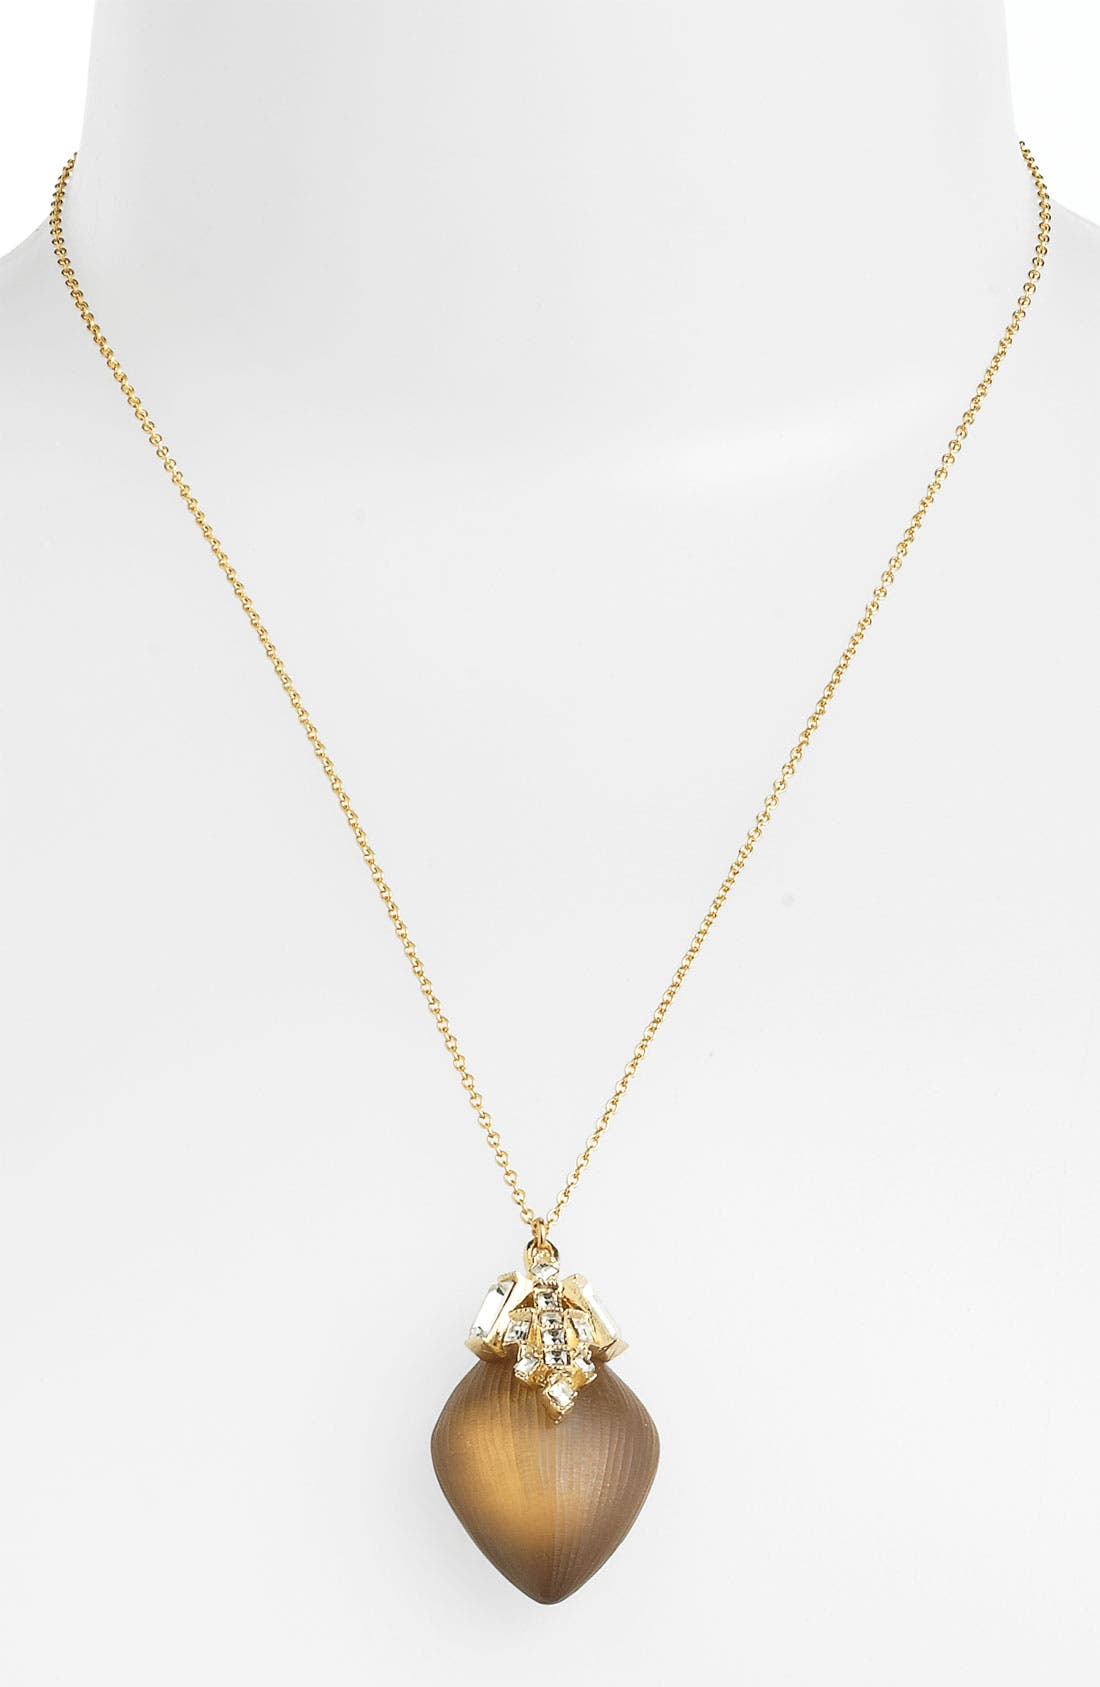 Main Image - Alexis Bittar 'Teatro Moderne' Studded Kite Pendant Necklace (Nordstrom Exclusive)